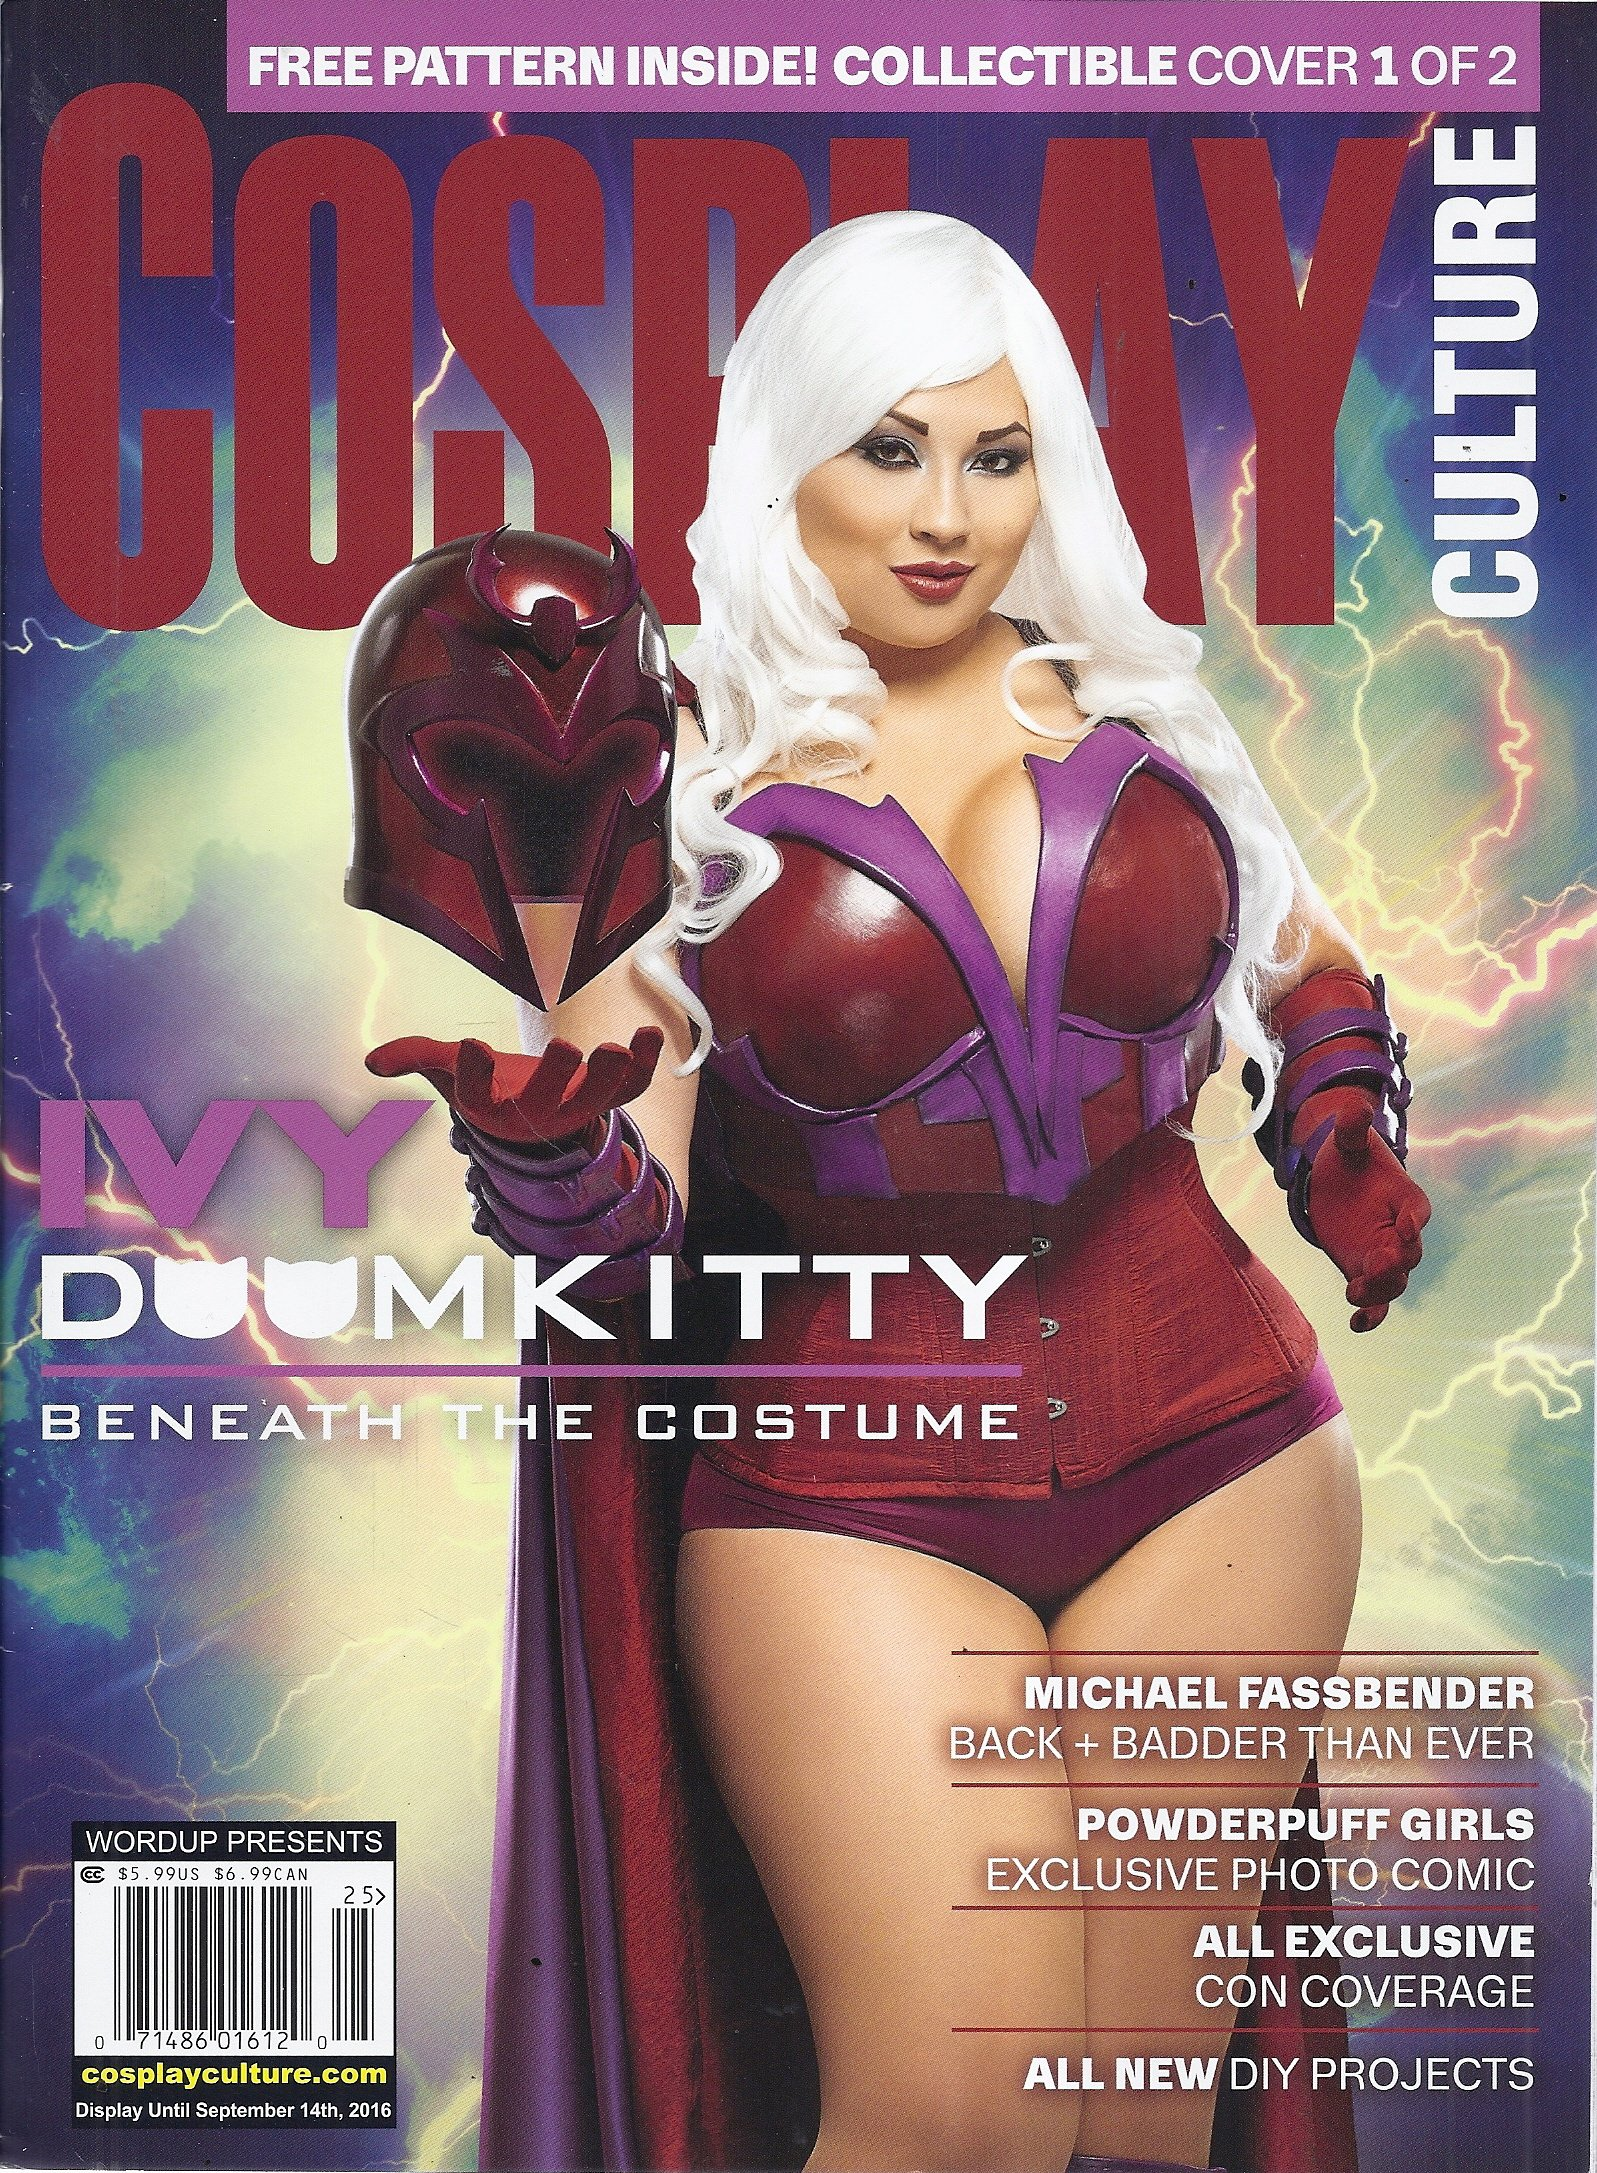 Word Up Presents: Cosplay Culture (#30 - Cover 1 of 2 - Ivy Doomkitty) ebook